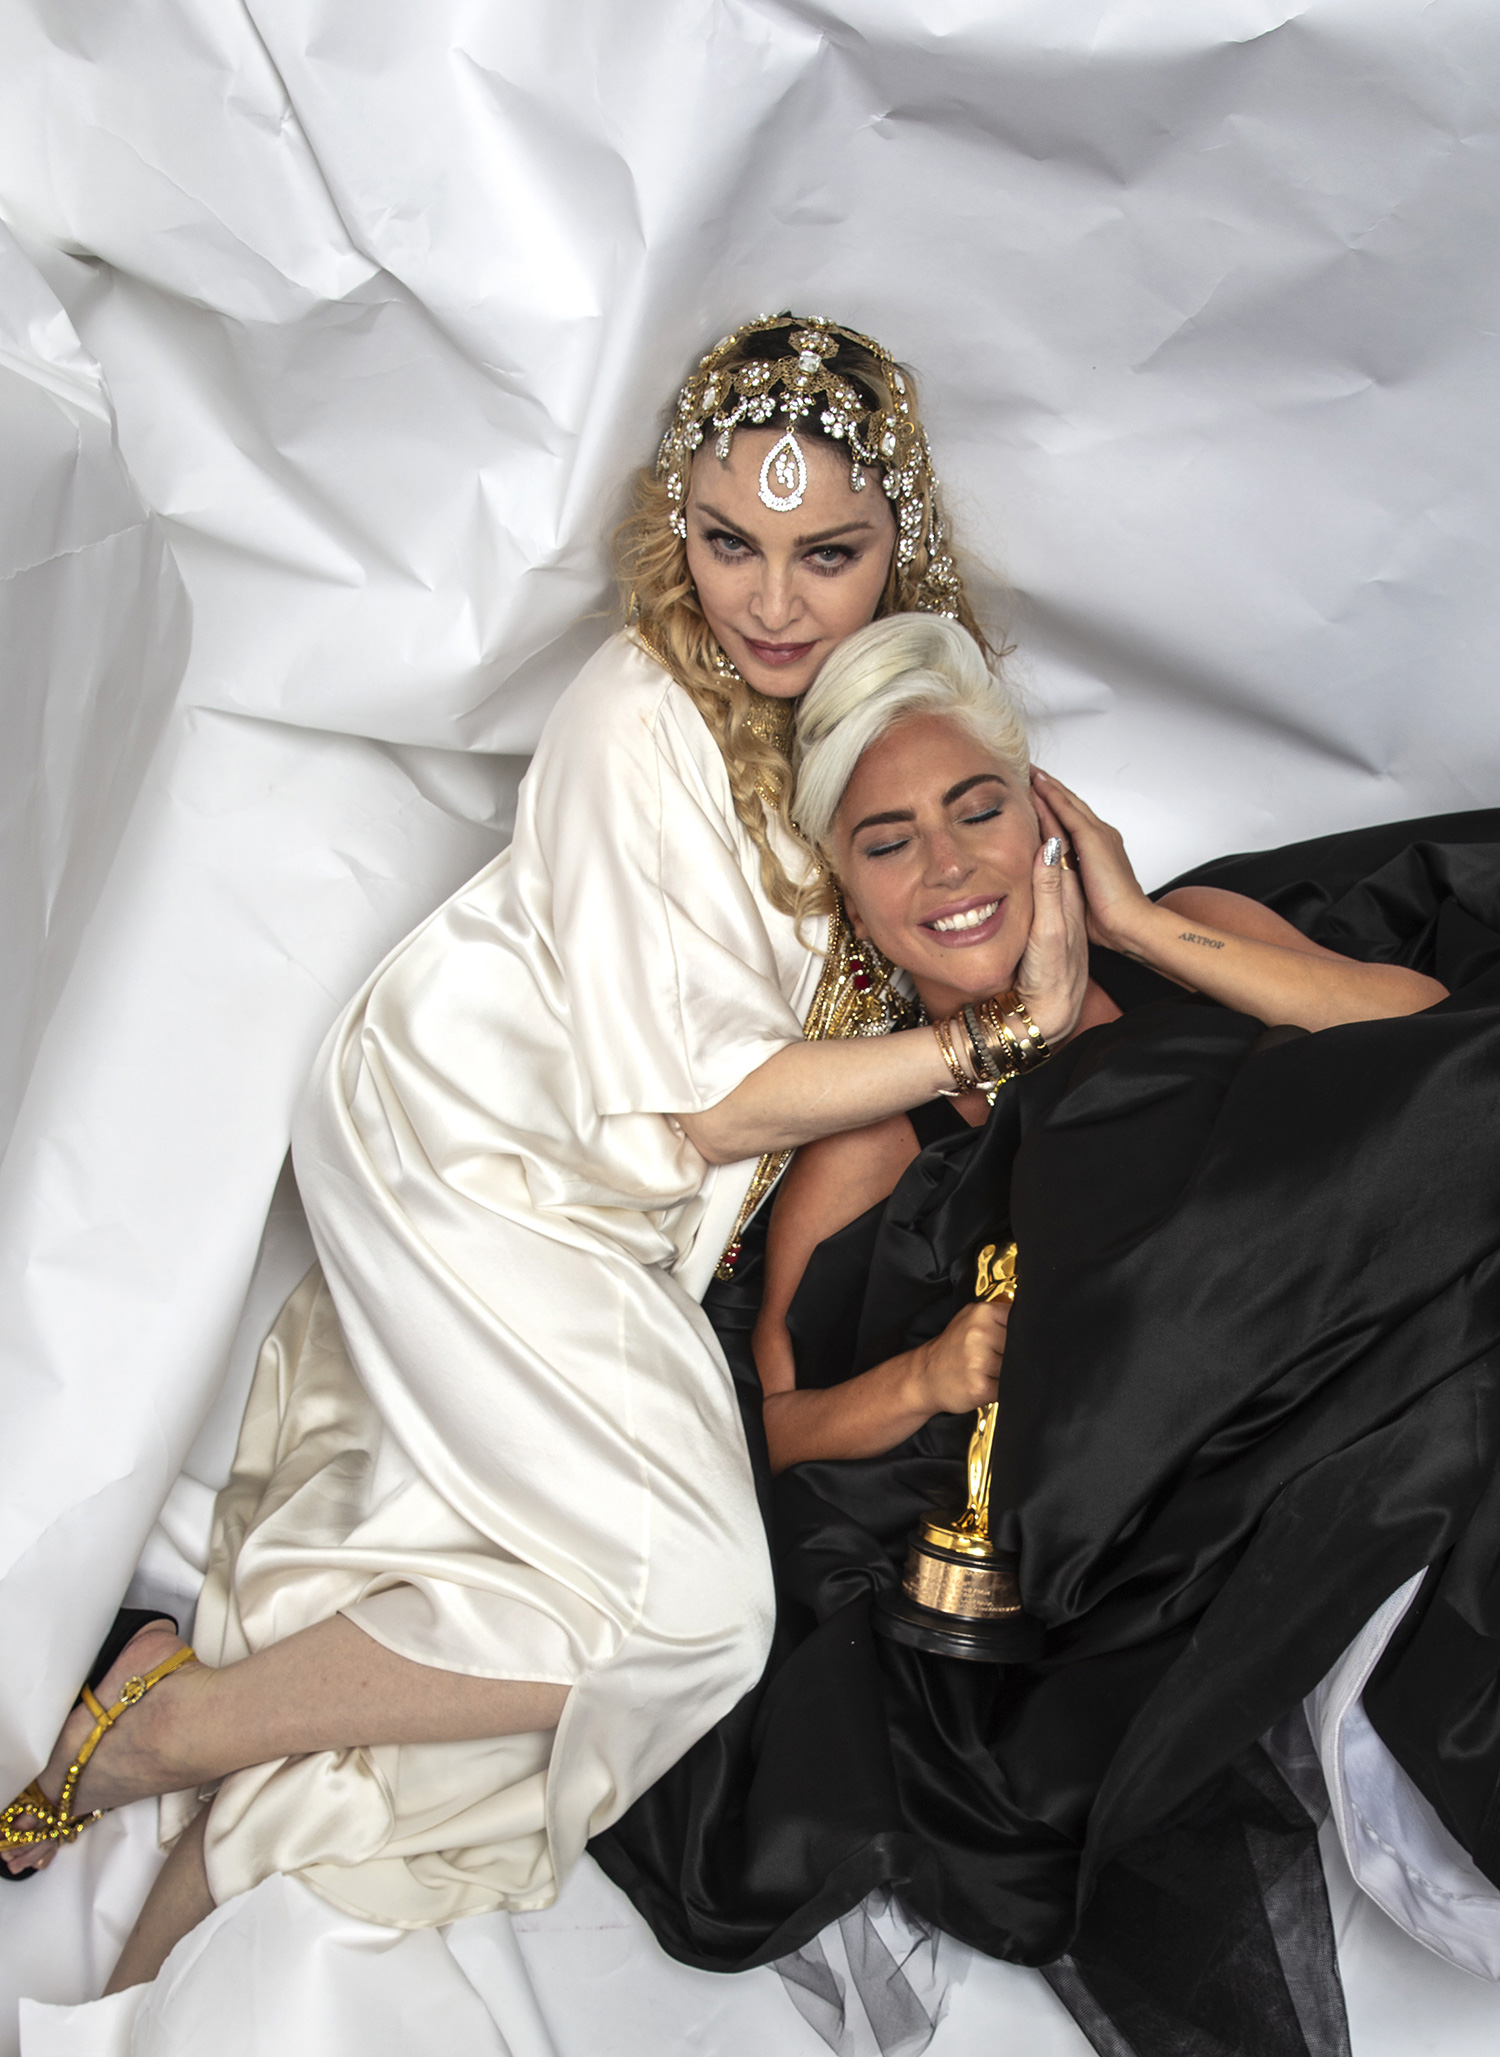 lady-gaga-madonna-oscars-after-party01_x